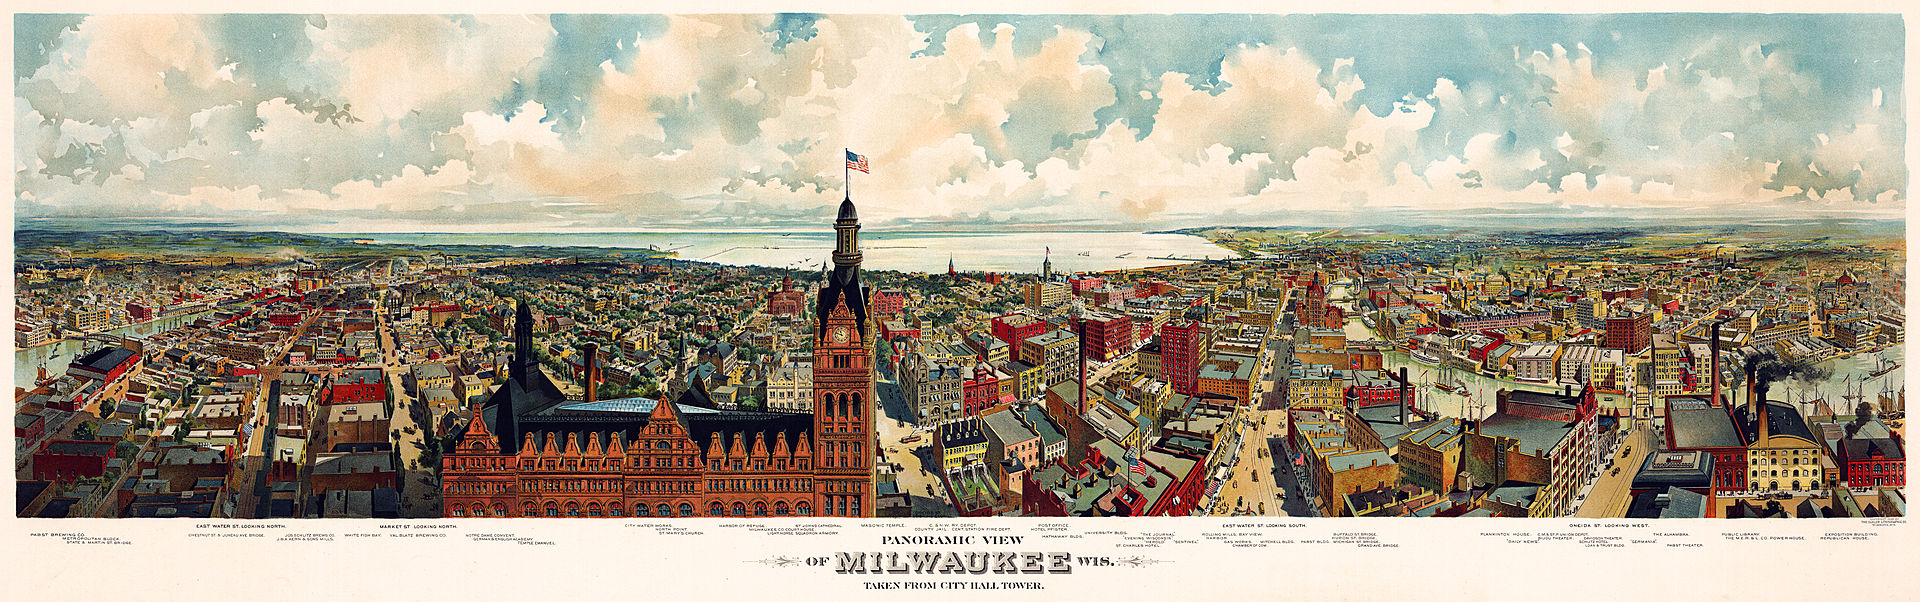 Panorama map of Milwaukee, with a view of the City Hall tower, 1898. (Library of Congress's Prints and Photographs division)